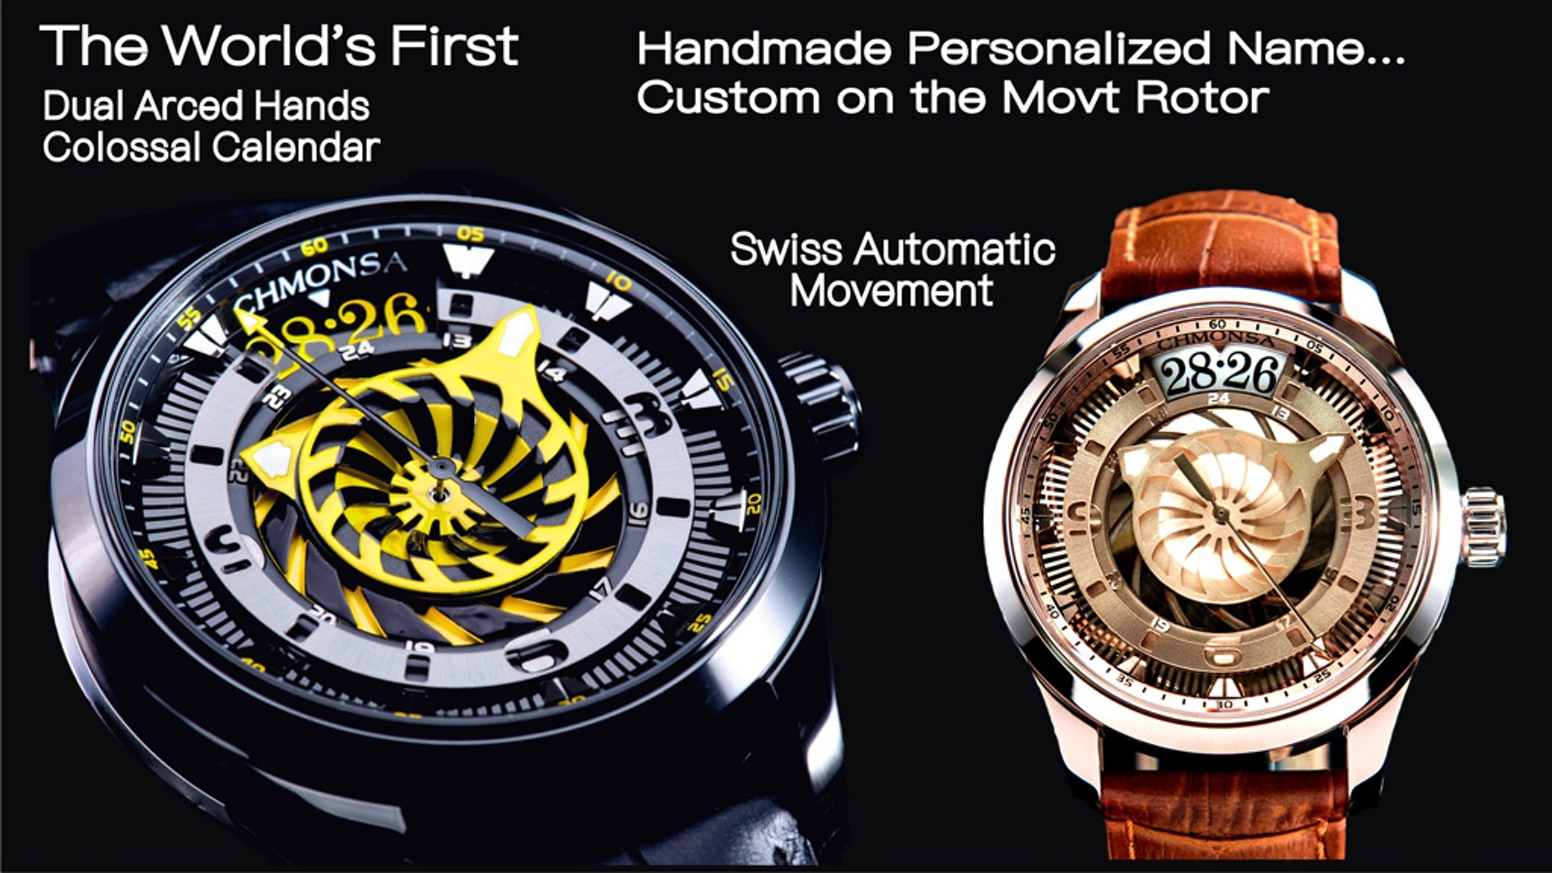 The World's First automatic watch with Unprecedented Dual-Arced Hands and Colossal Calendar Display